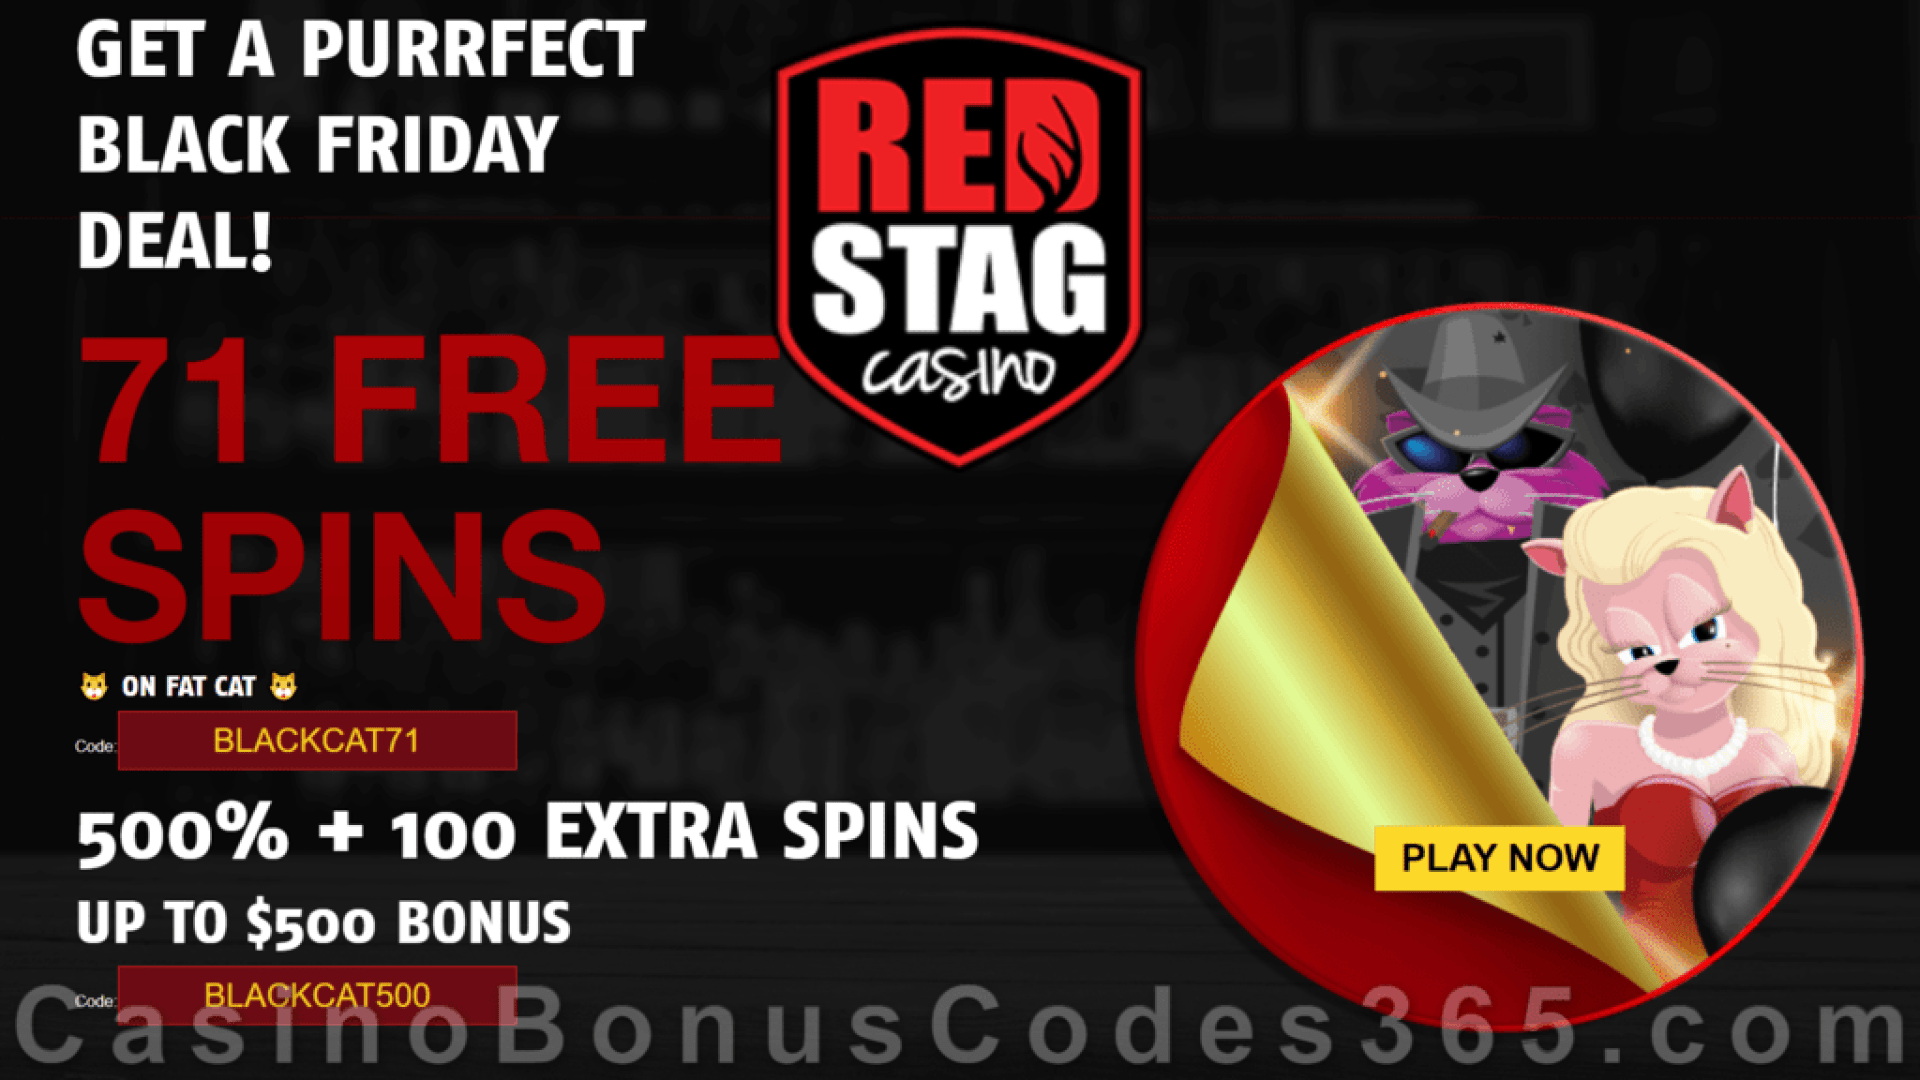 Red Stag Casino 71 FREE Spins on WGS Fat Cat and 500% Match Bonus plus 100 FREE Spins Massive Black Friday Deal